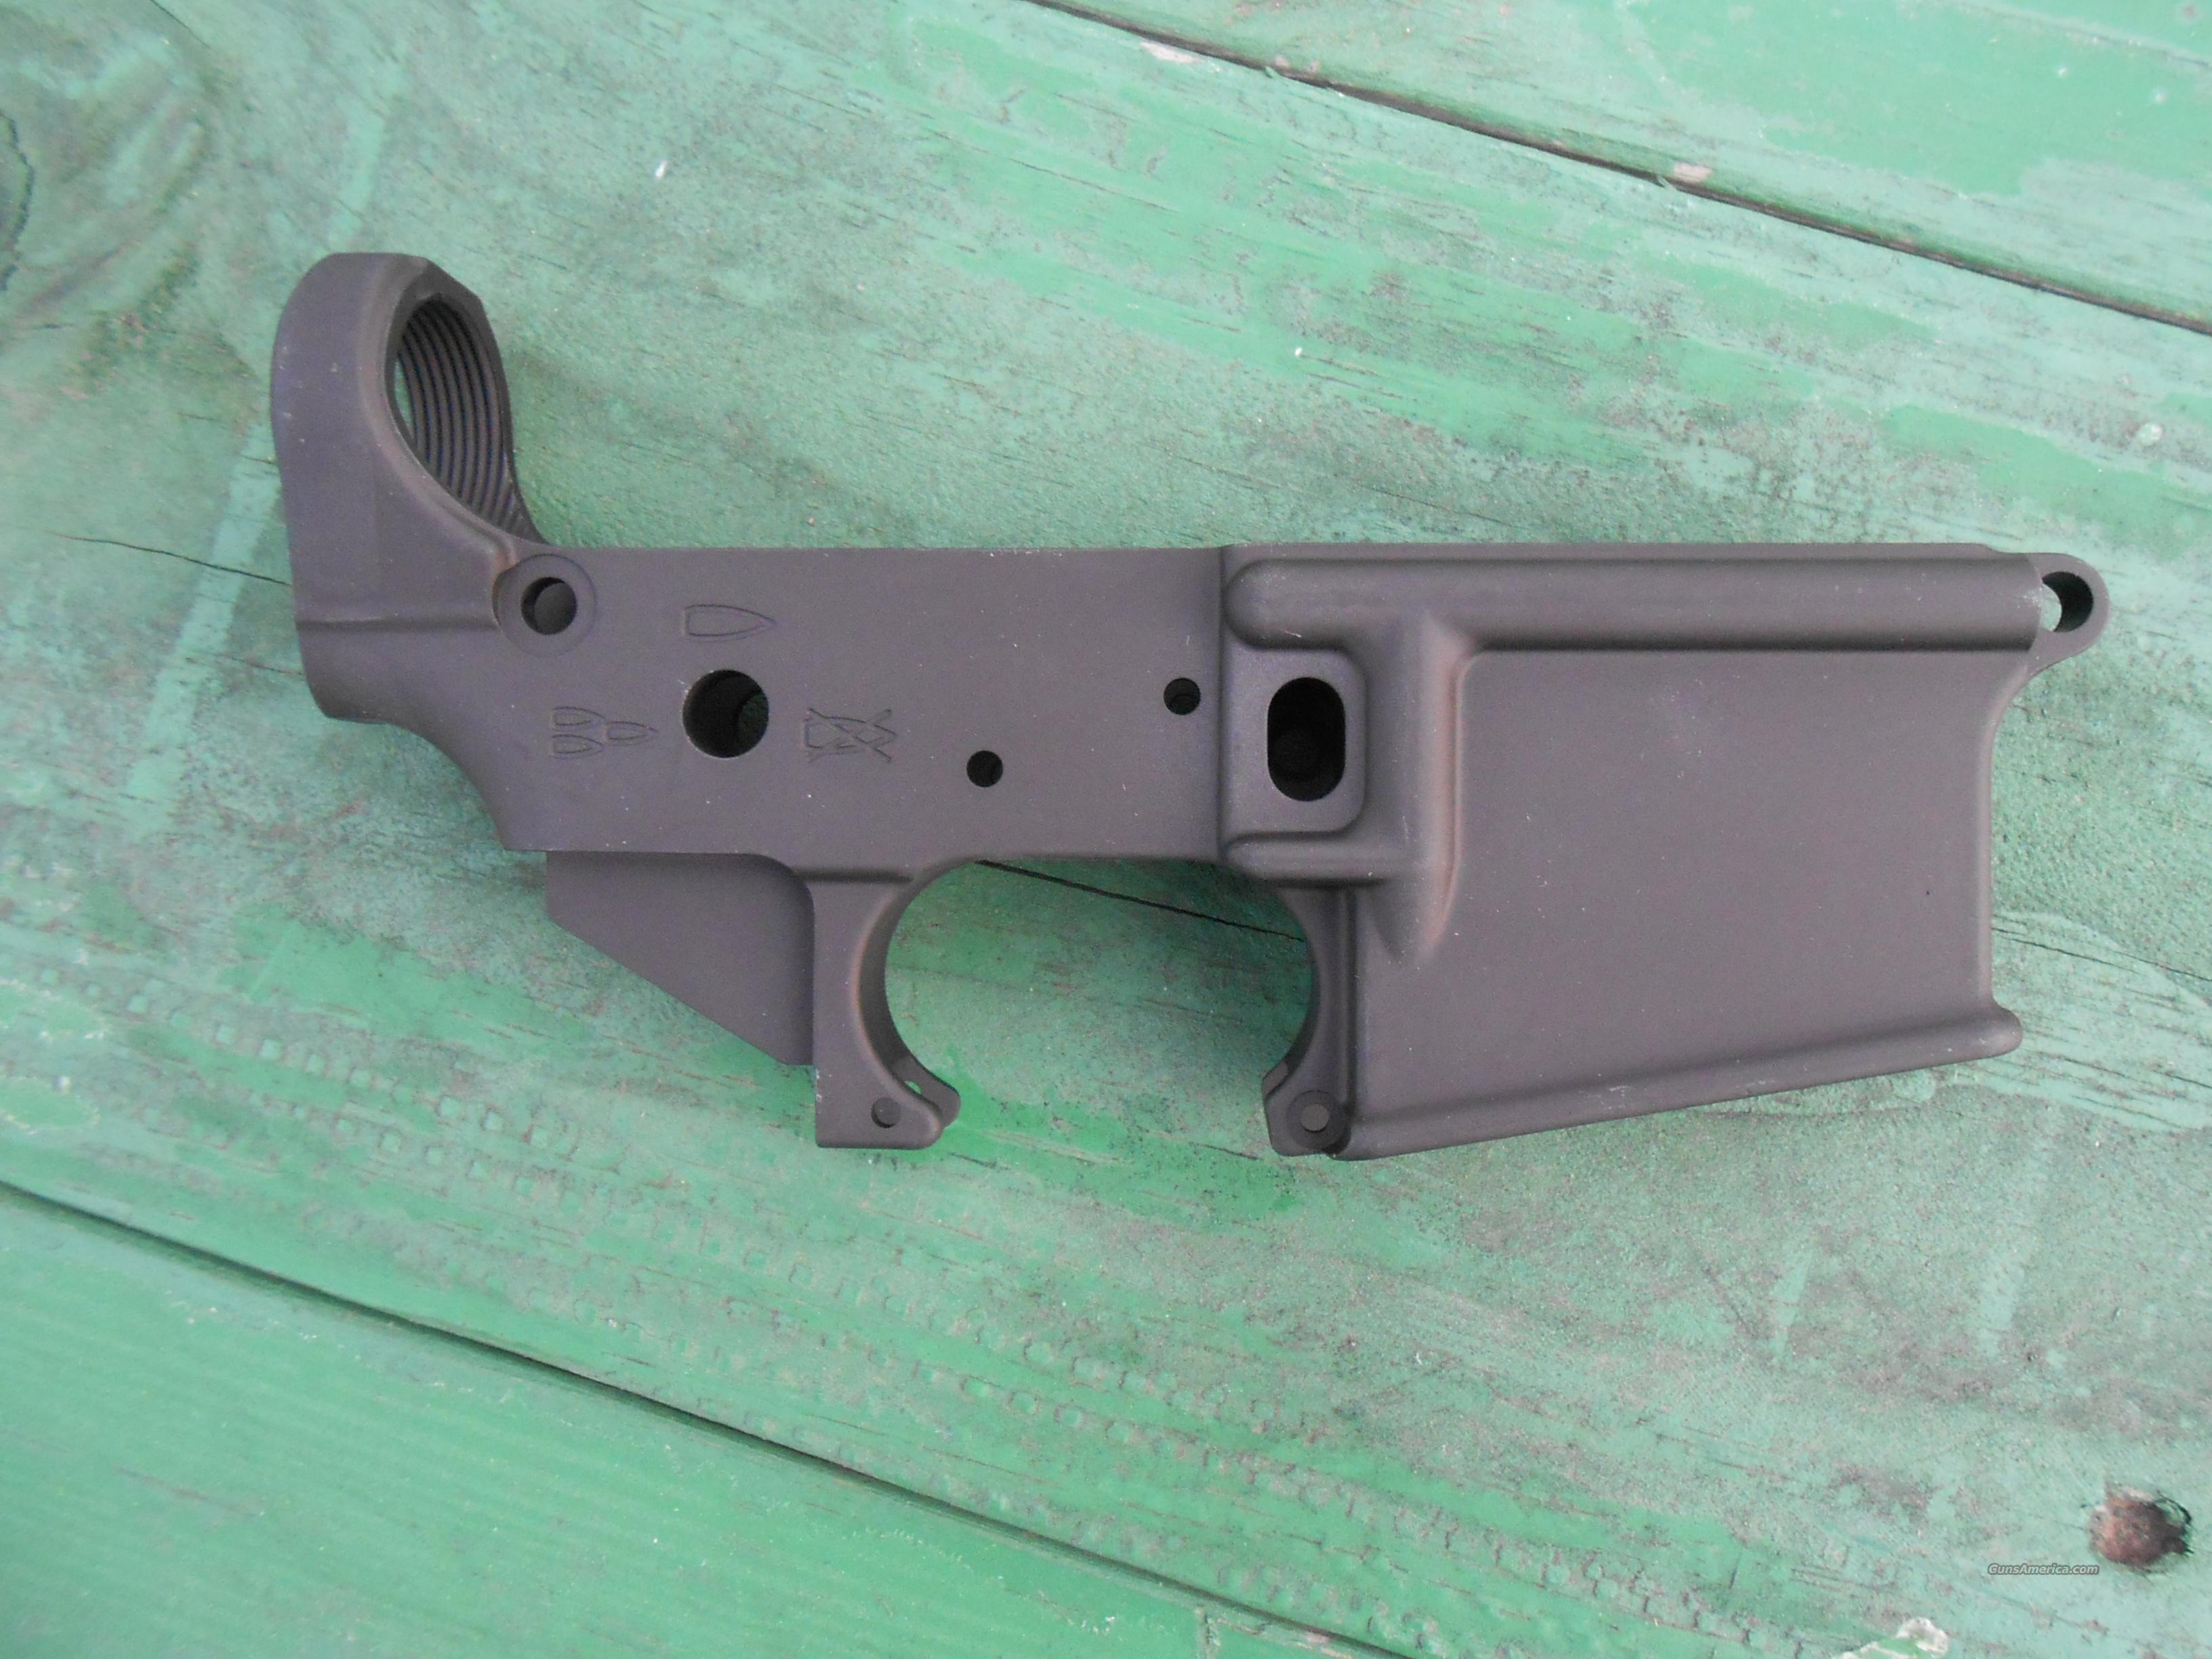 DSA STRIPPED LOWER  Guns > Rifles > AR-15 Rifles - Small Manufacturers > Lower Only